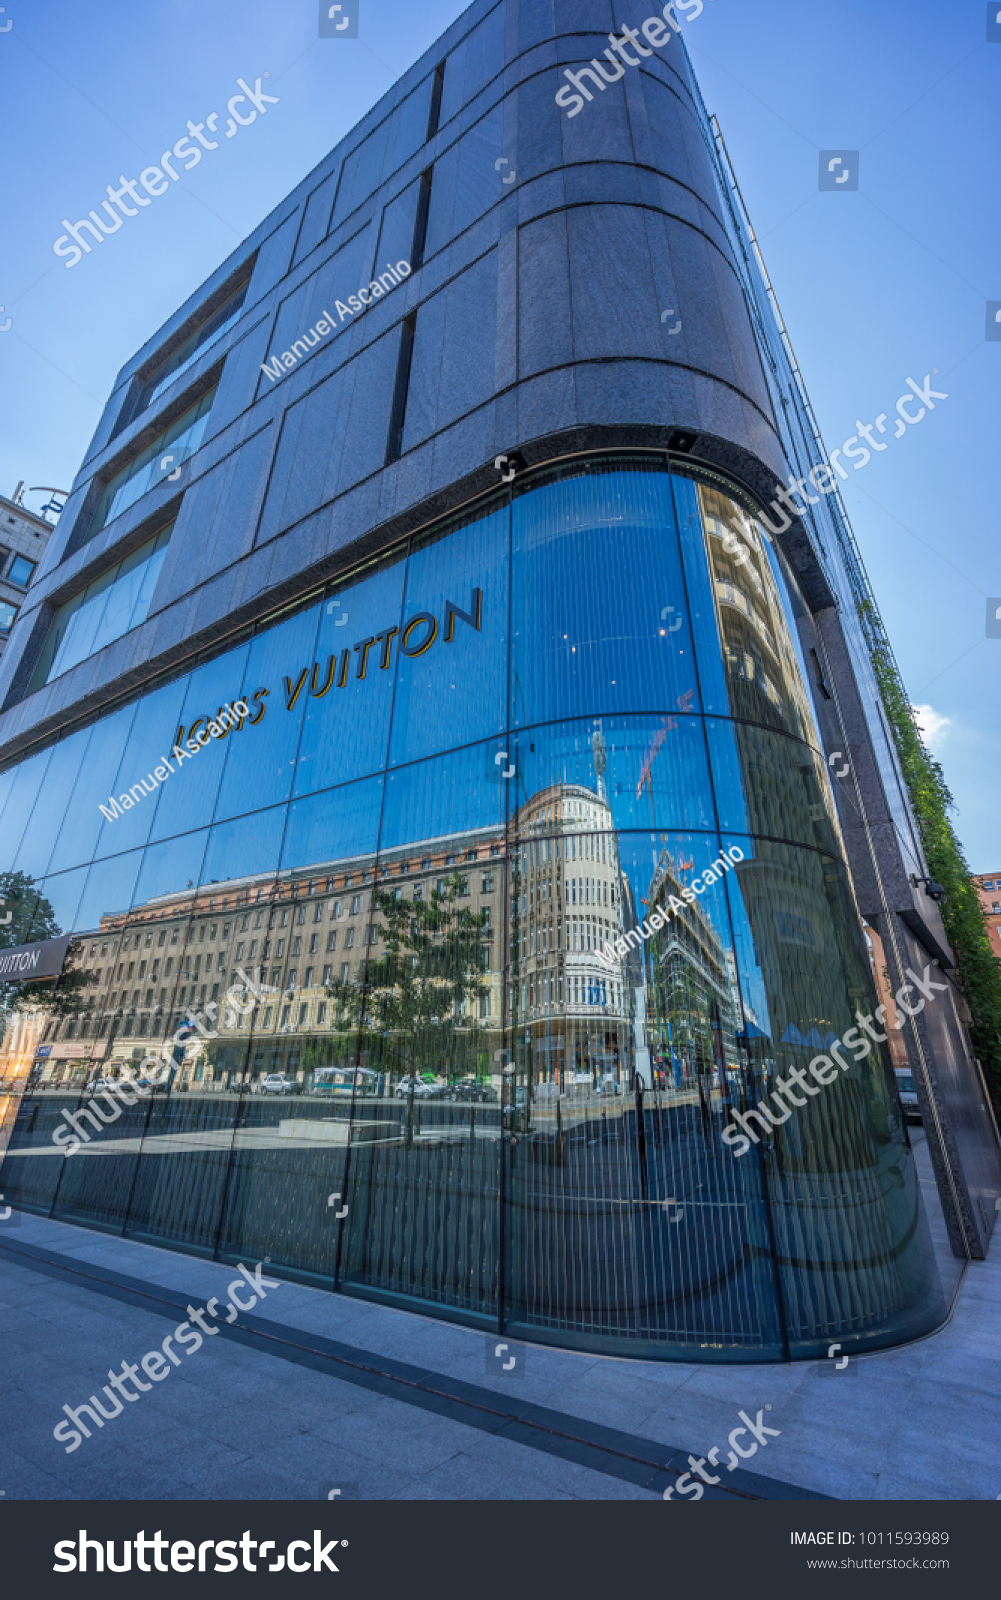 58c4320b09d08 Warsaw, Poland - July 24, 2017 : Reflections on the facade of Louis Vuitton